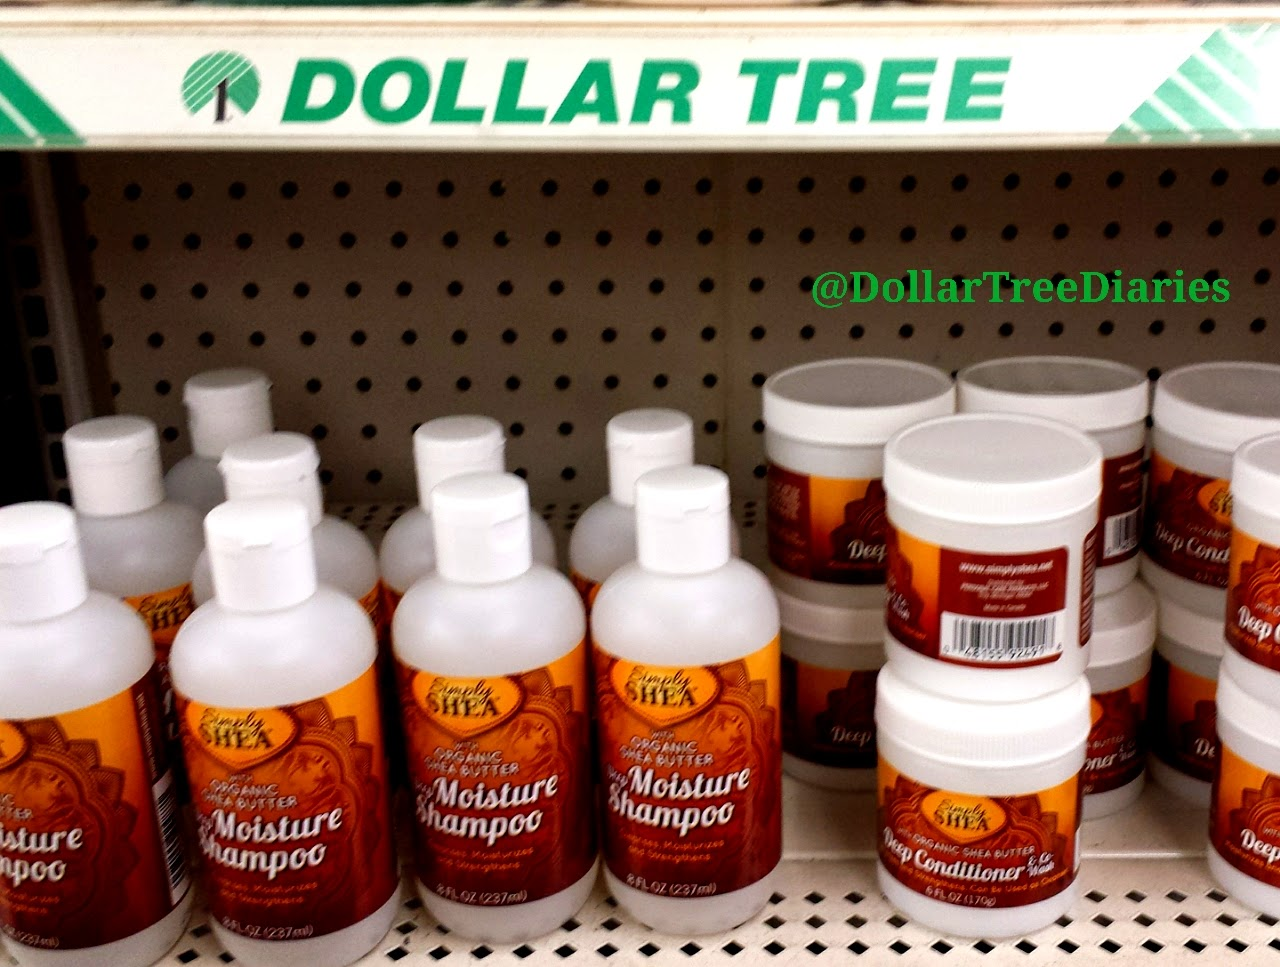 Dollar Tree Diaries Simply Shea Hair Products